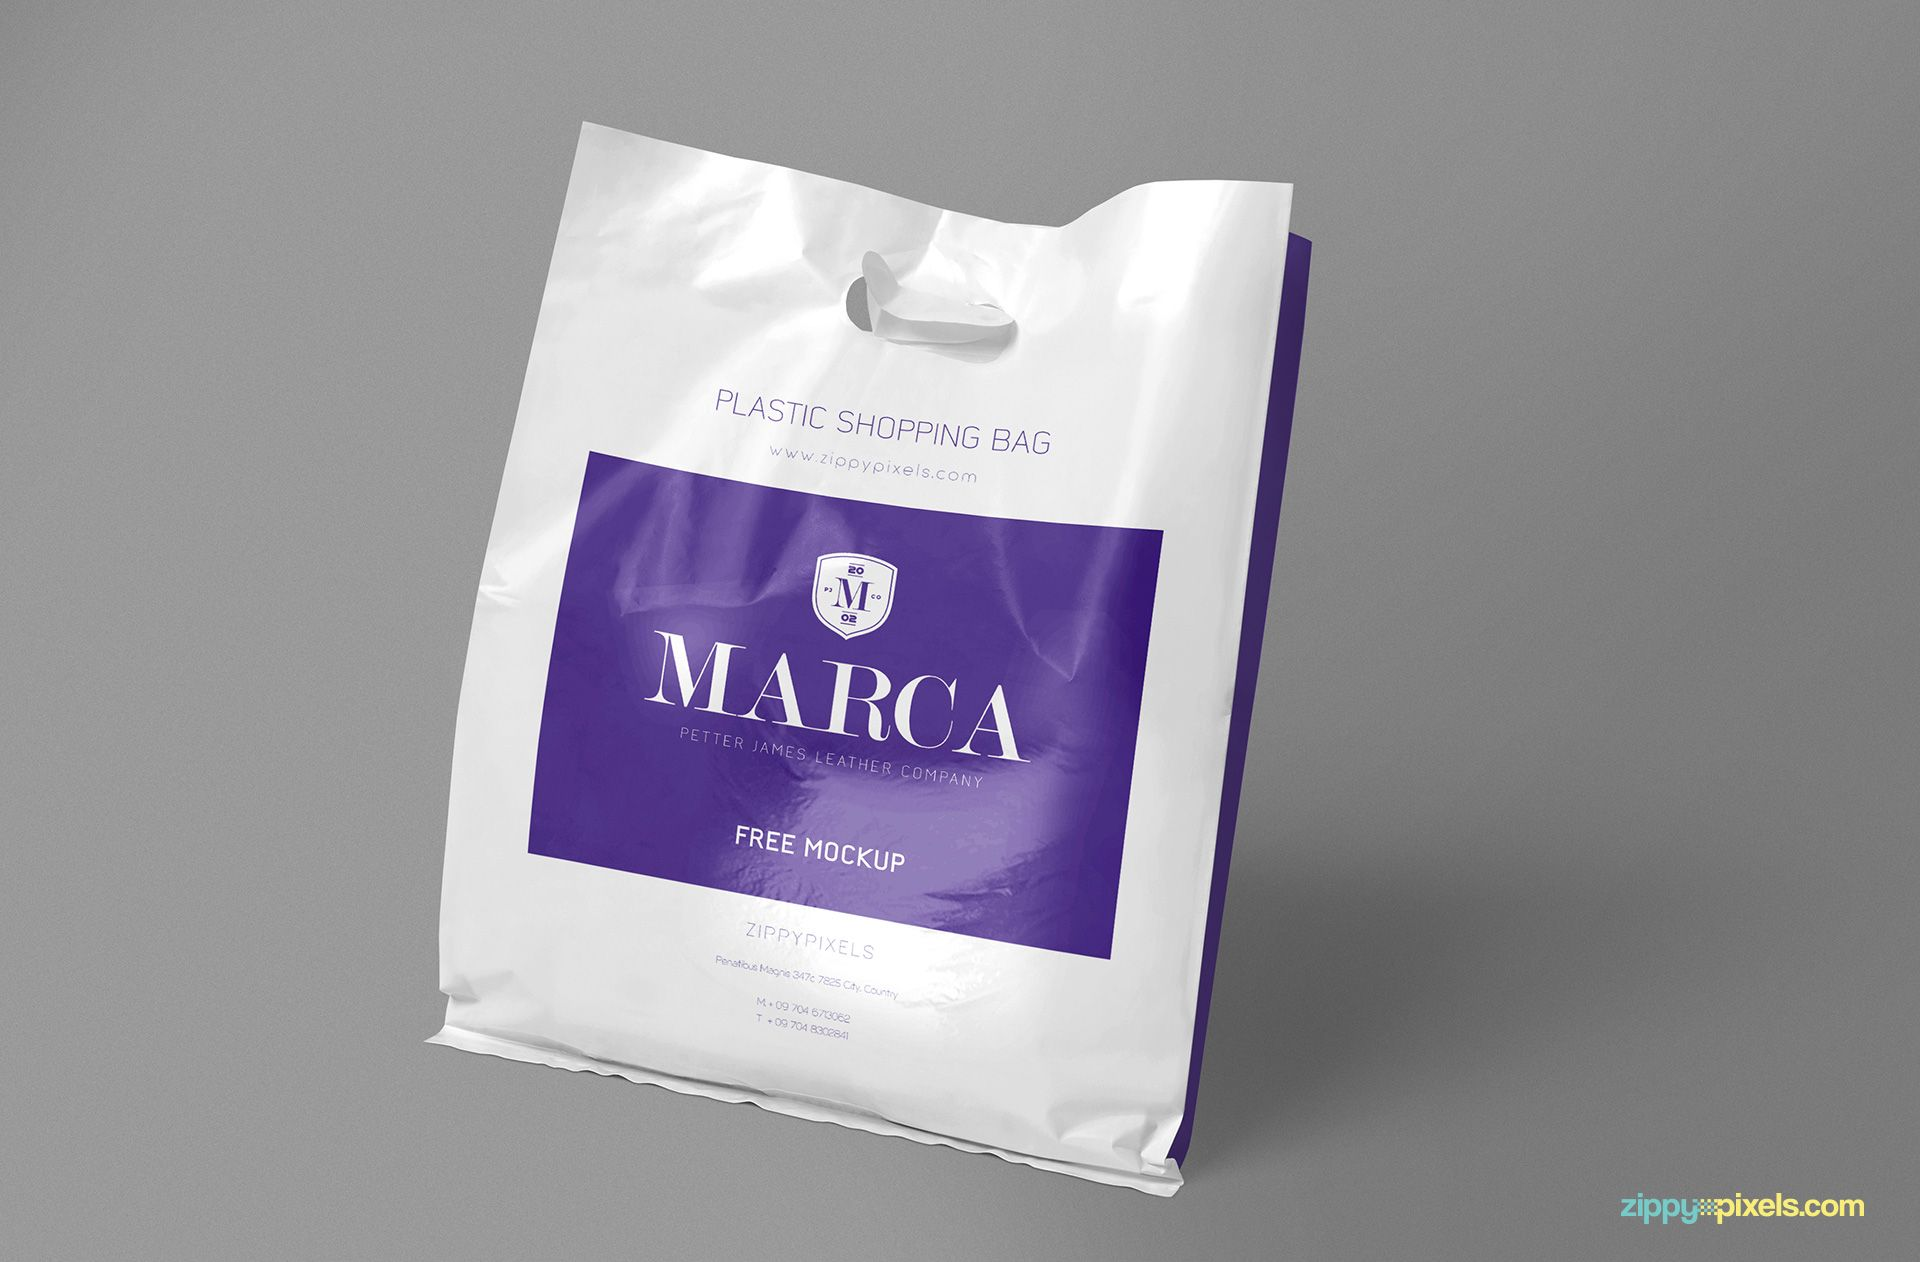 Download Free Plastic Bag Mockup Zippypixels Bag Mockup Plastic Bag Packaging Mockup